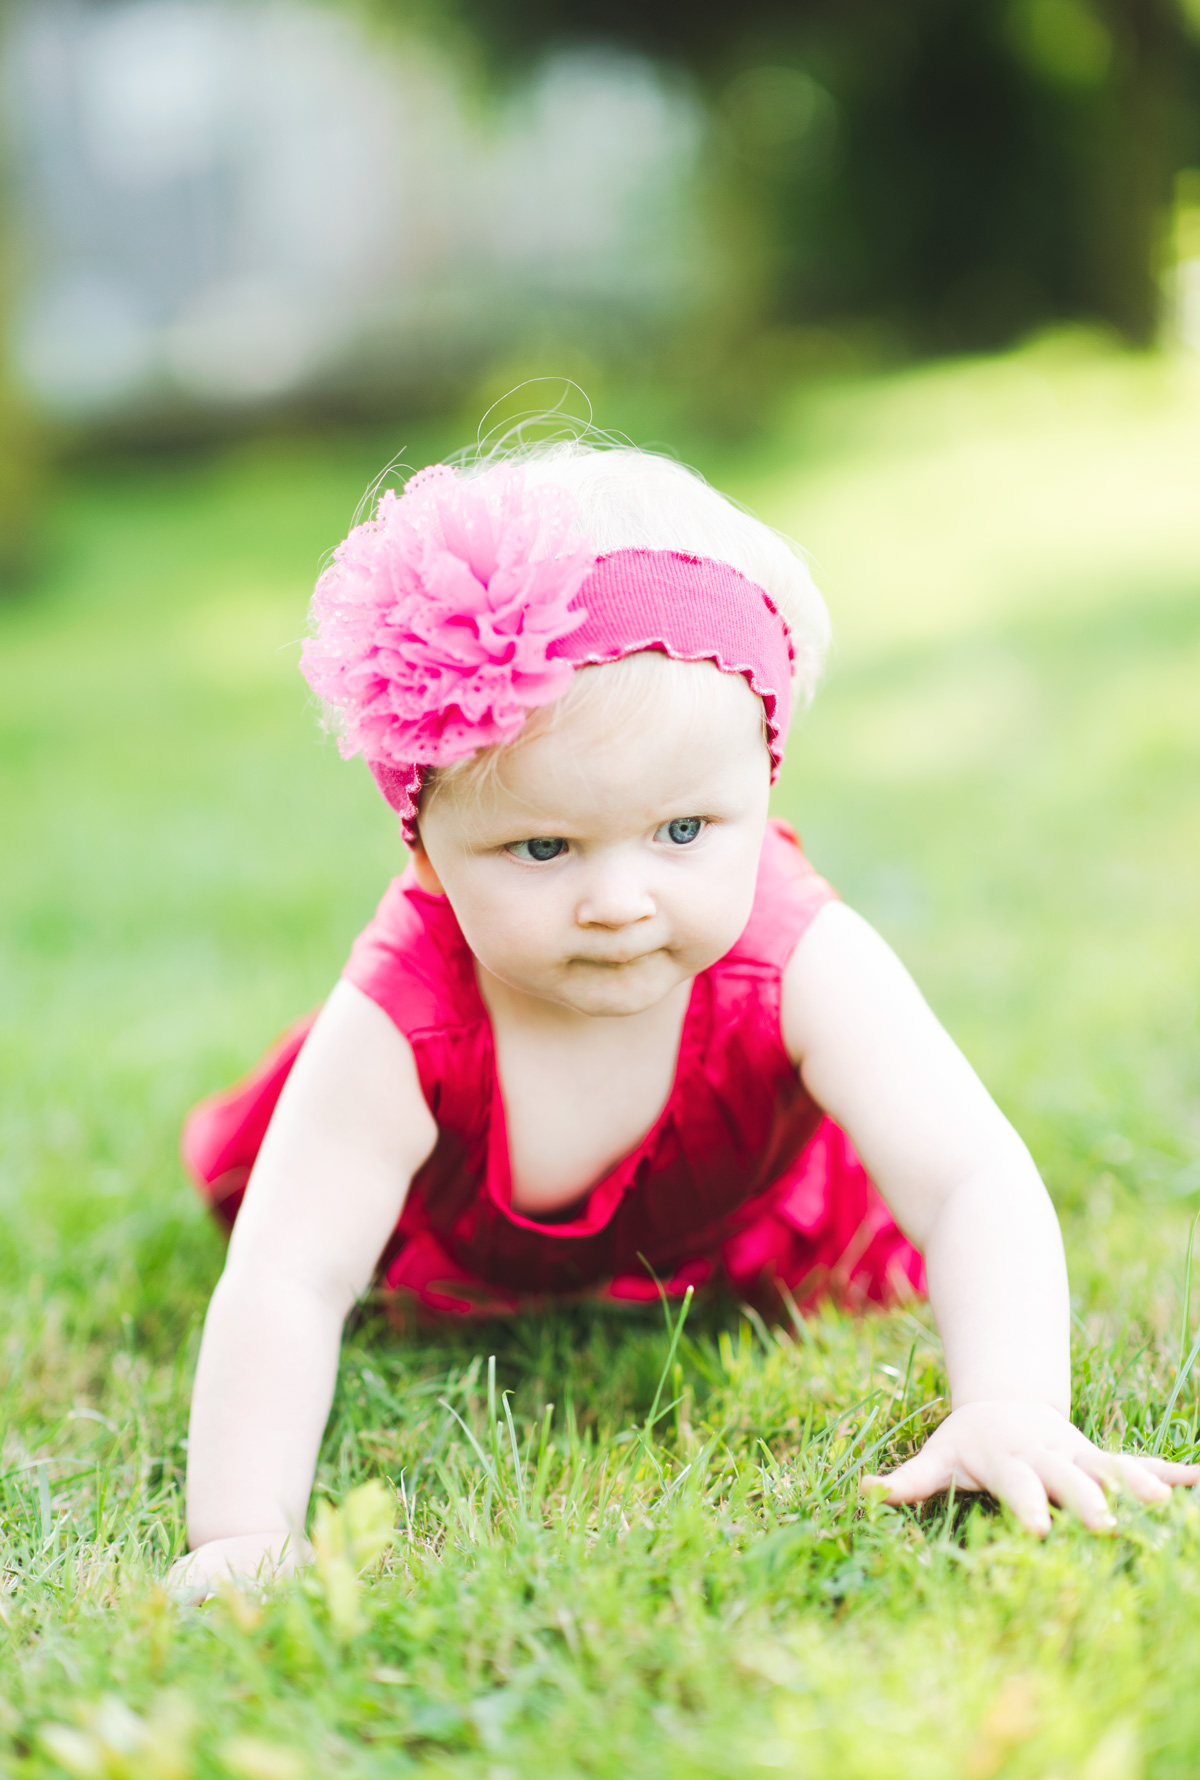 Baby girl in pink dress crawling on the grass in the garden